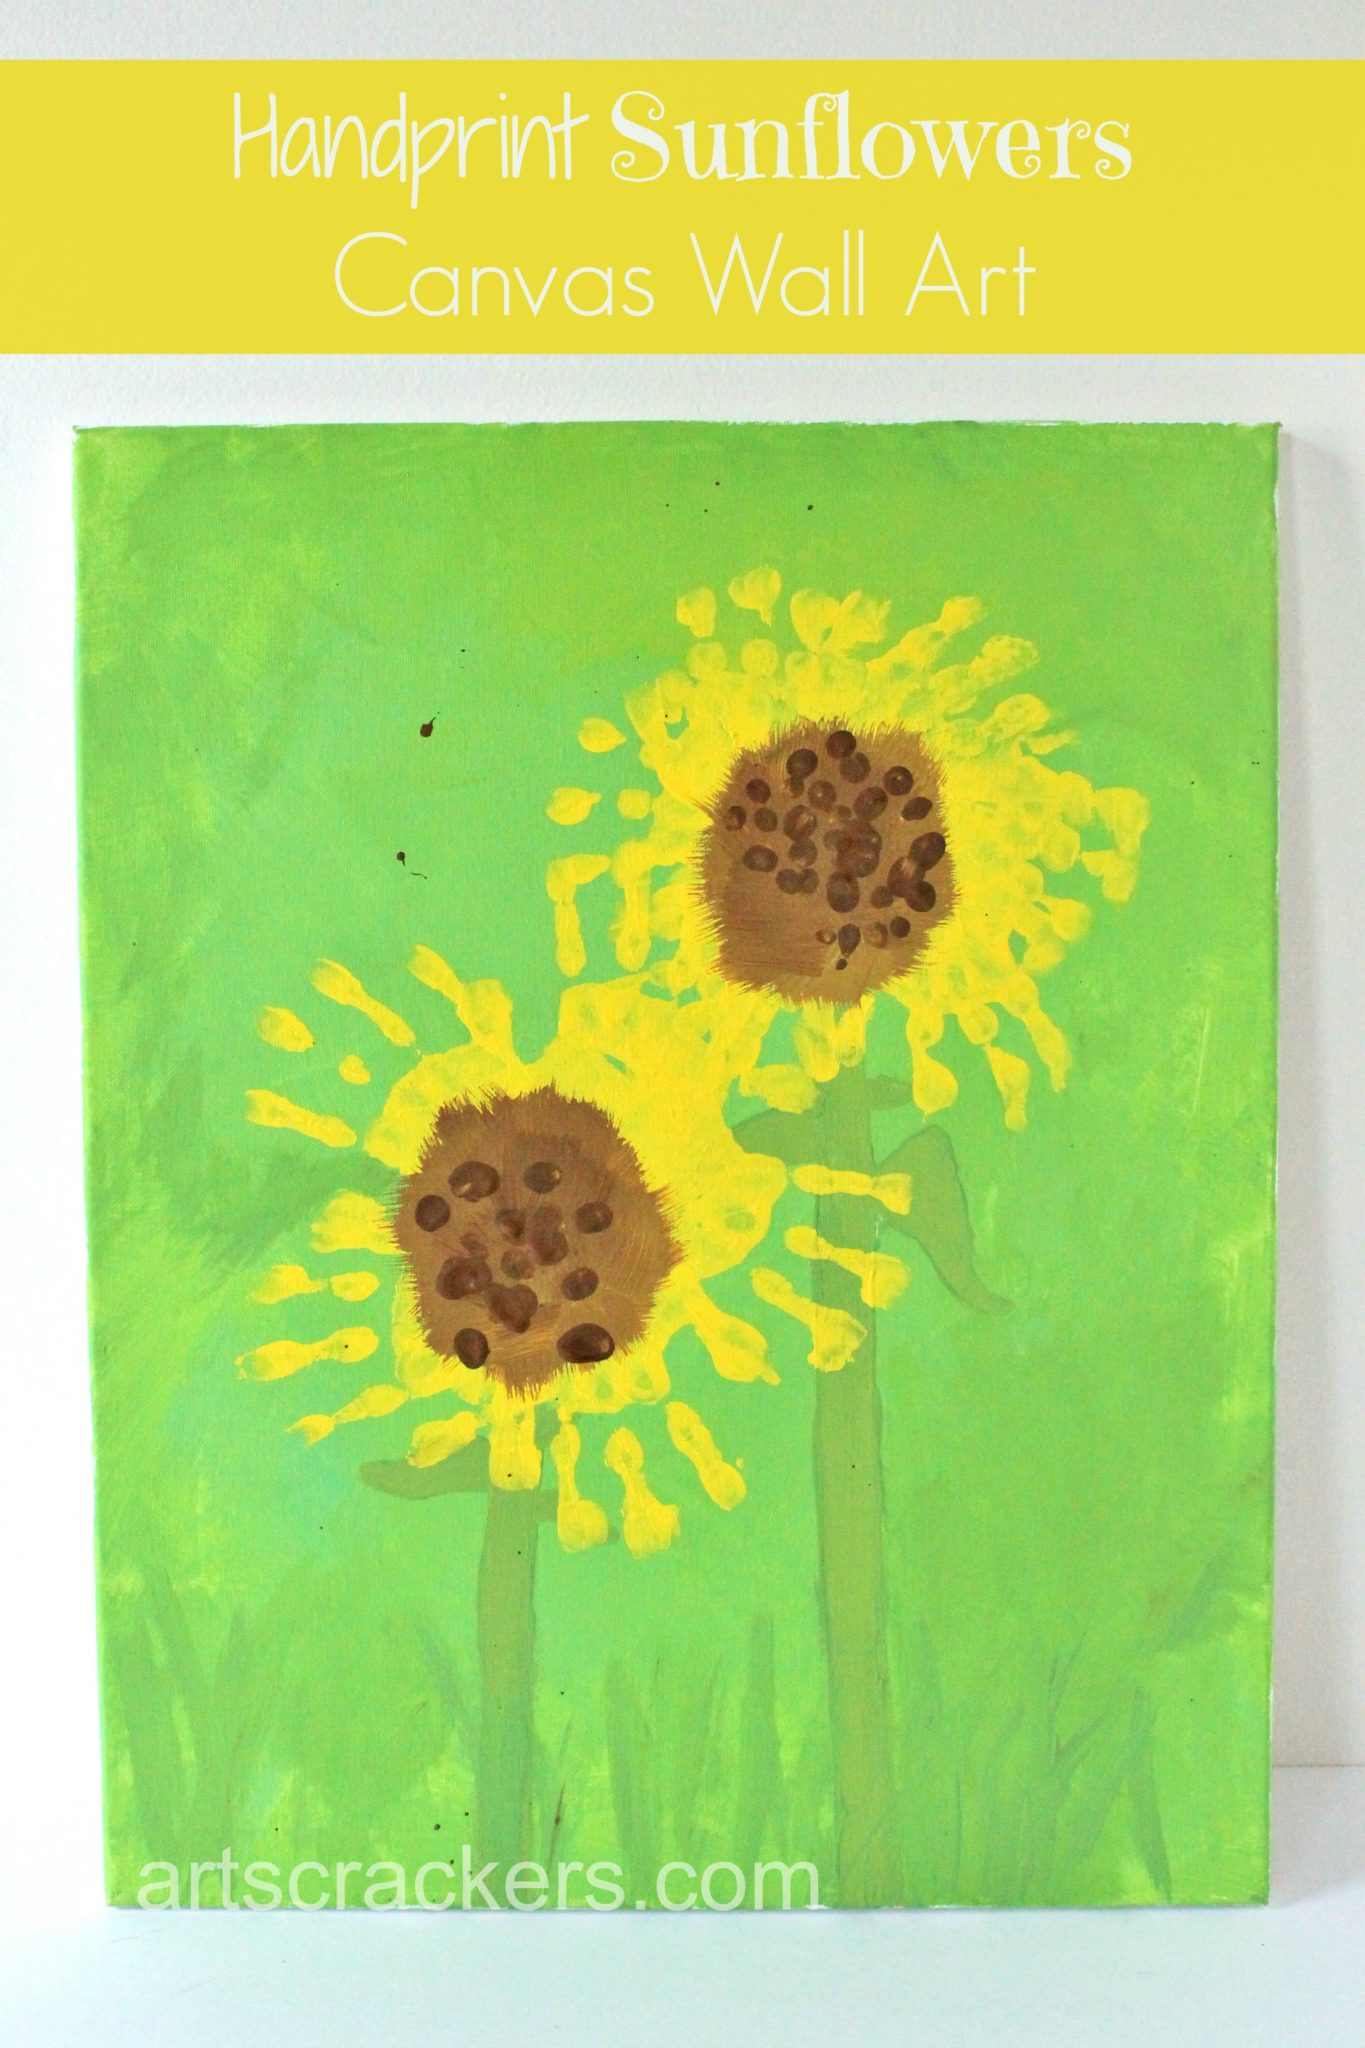 Handprint Sunflowers Canvas Wall Art. Click the picture to view the instructions.